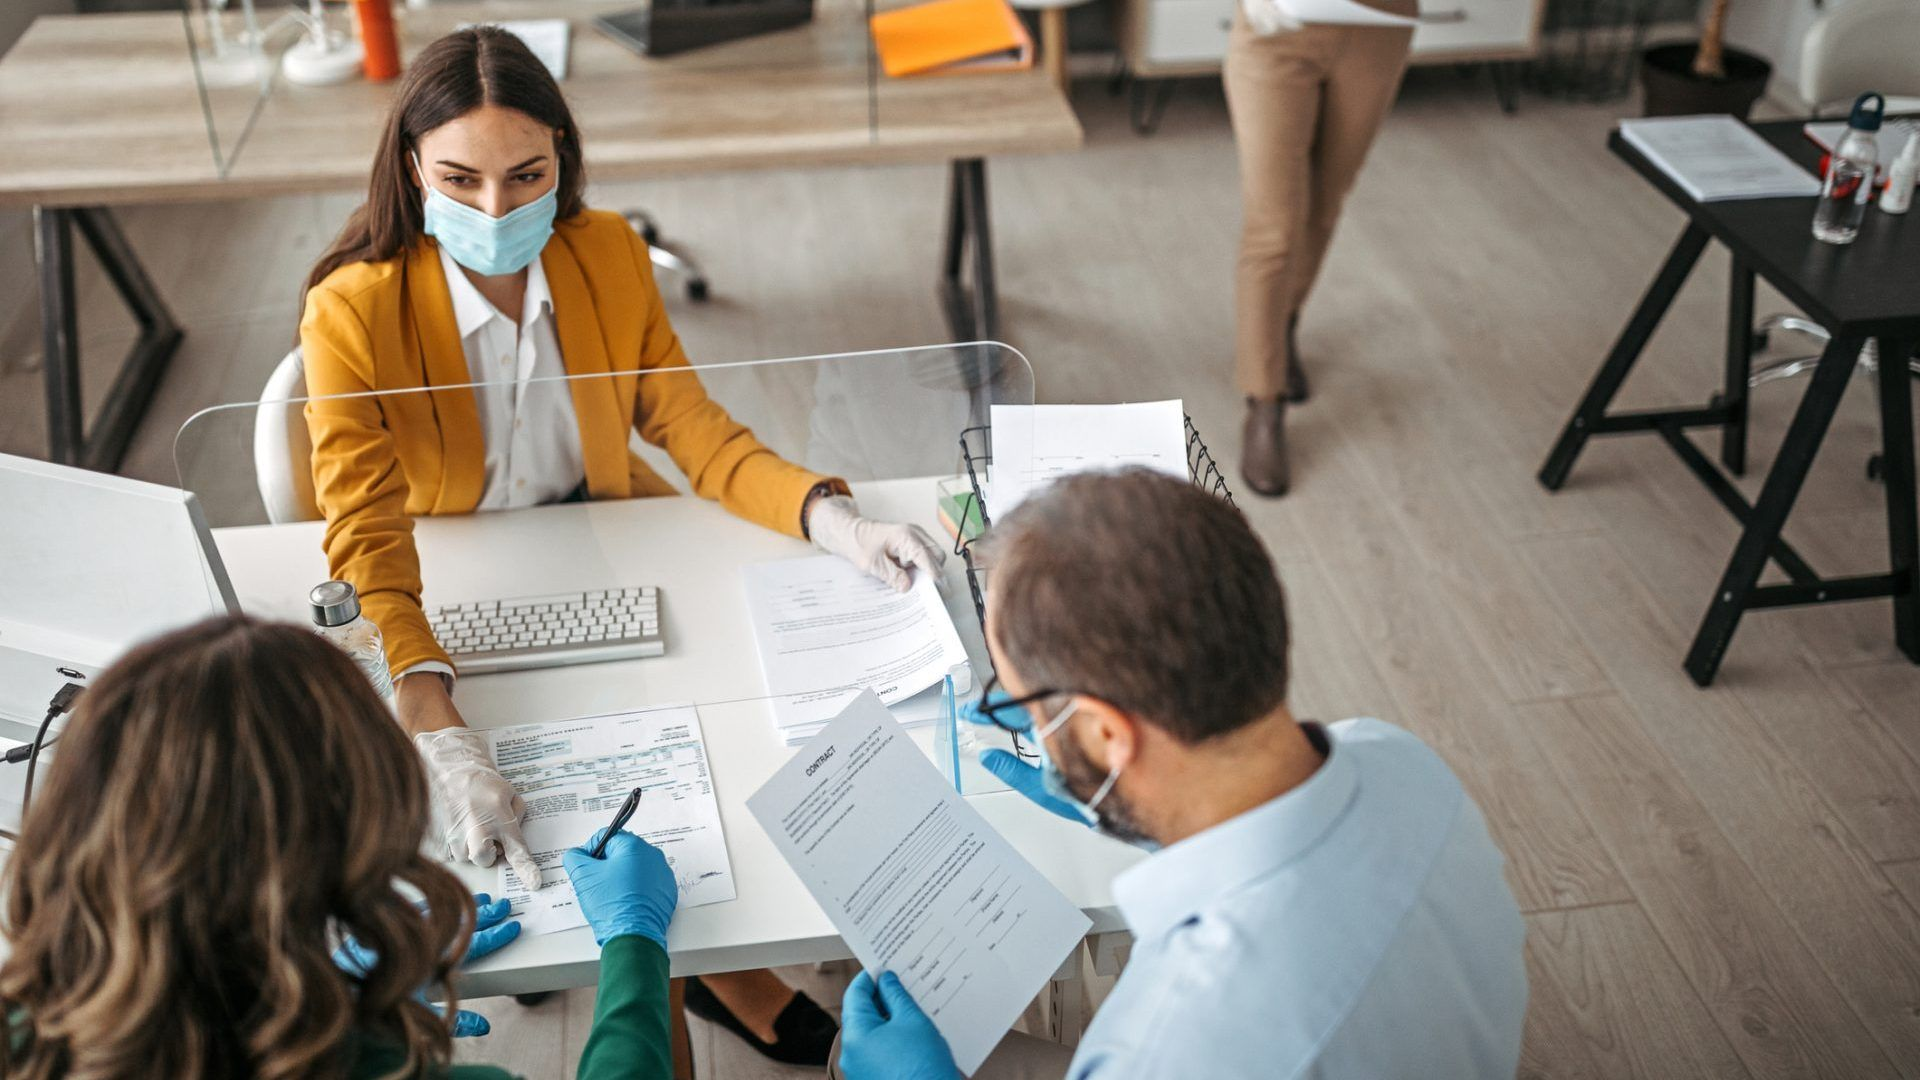 Couple signing a document on a meeting at insurance agent office wearing protective gloves and face mask.